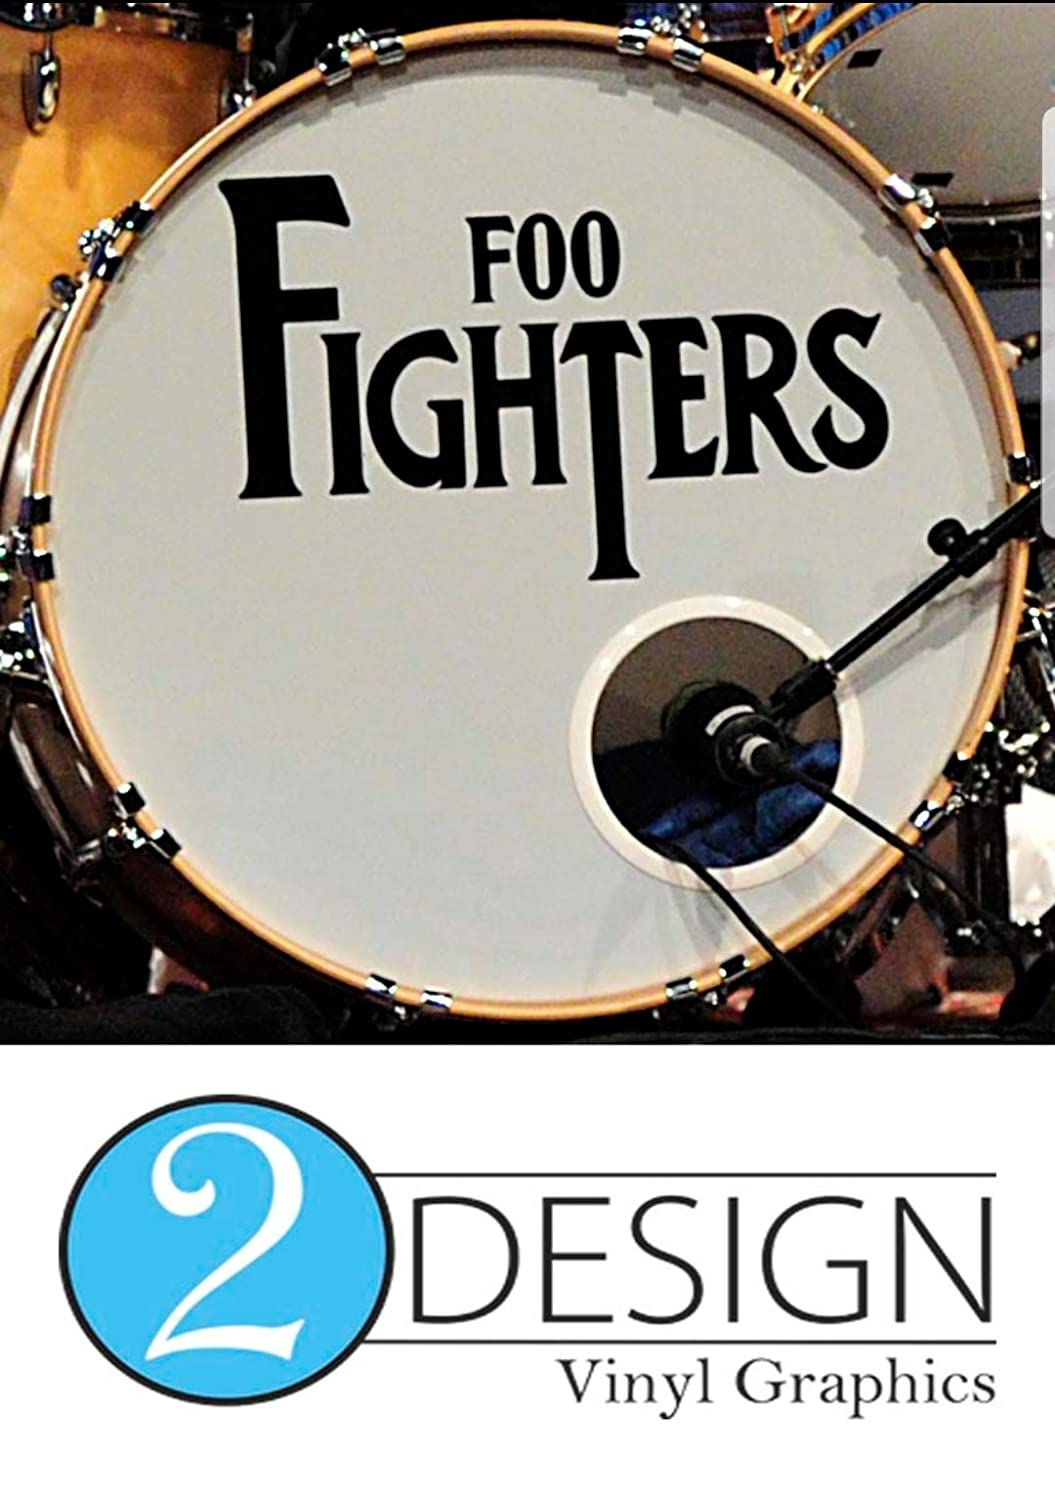 Custom personalised band drumkit decal sticker bass drum head skin amazon co uk musical instruments